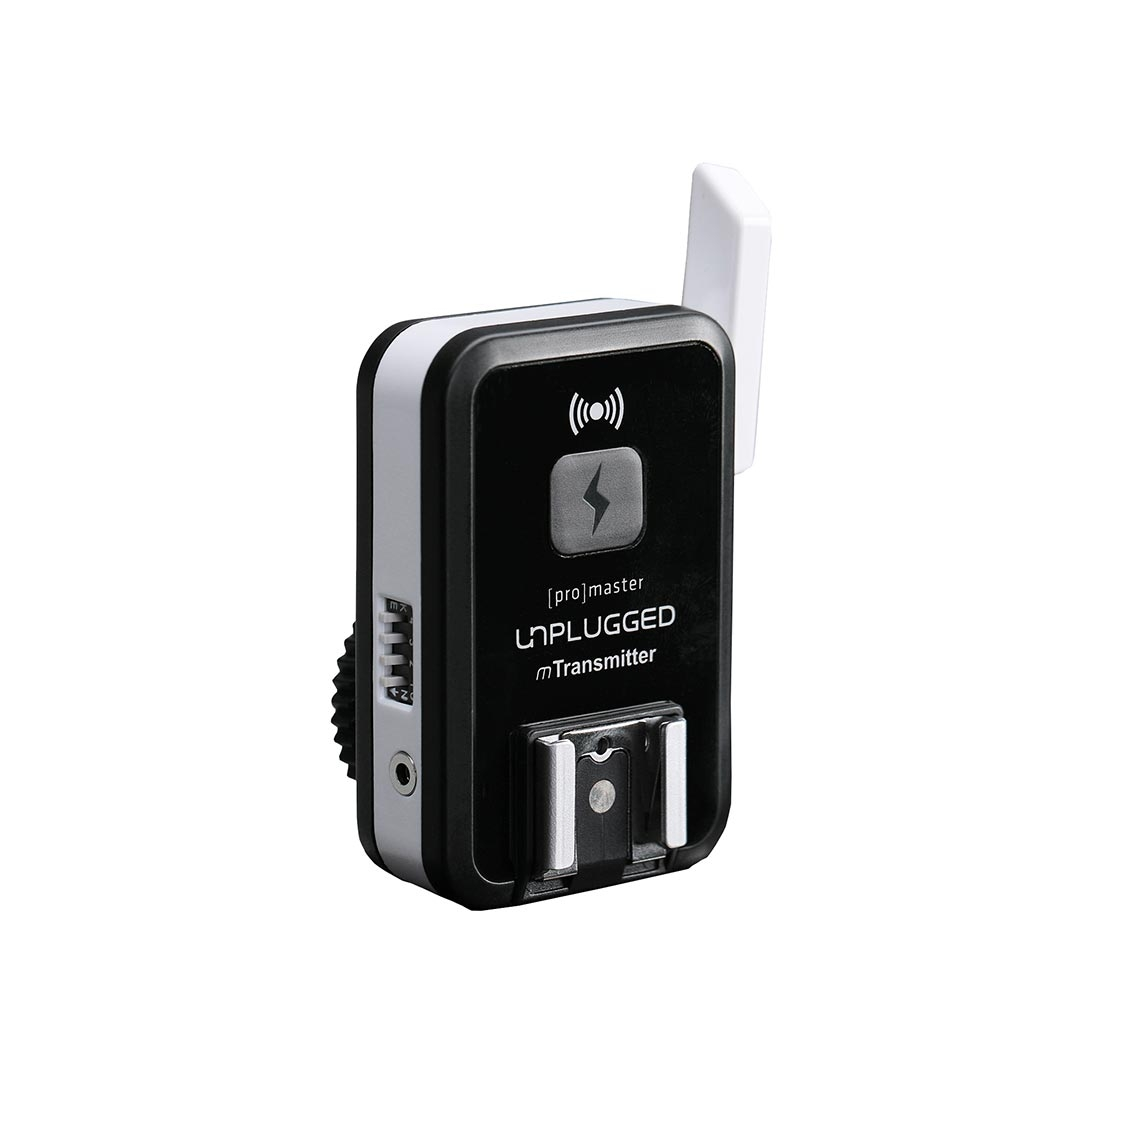 Promaster Unplugged mTransmitter